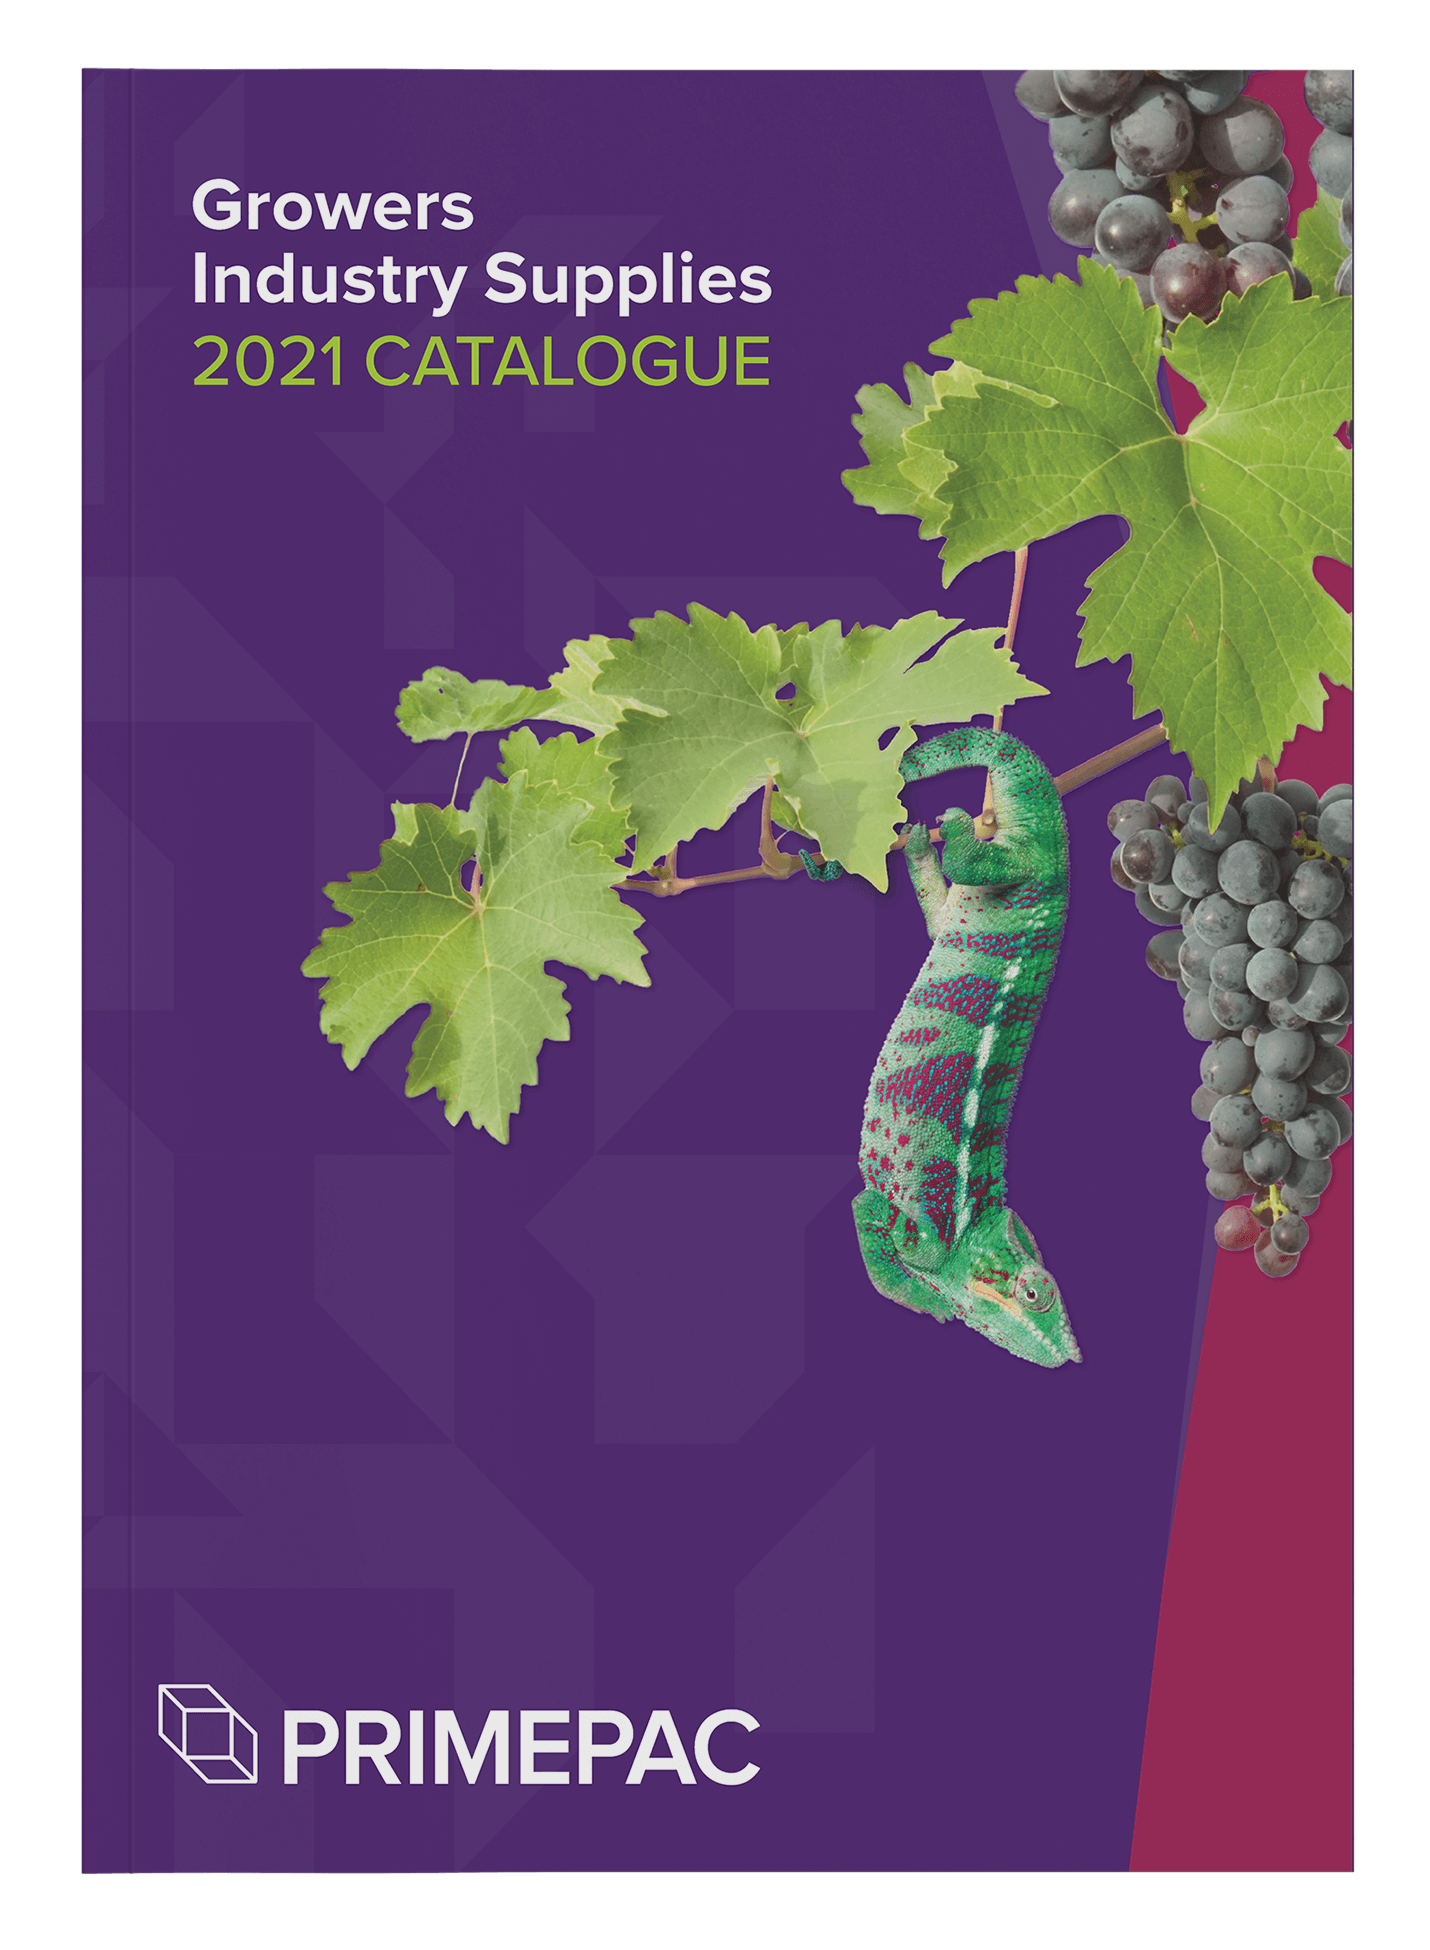 Growers industry catalogue